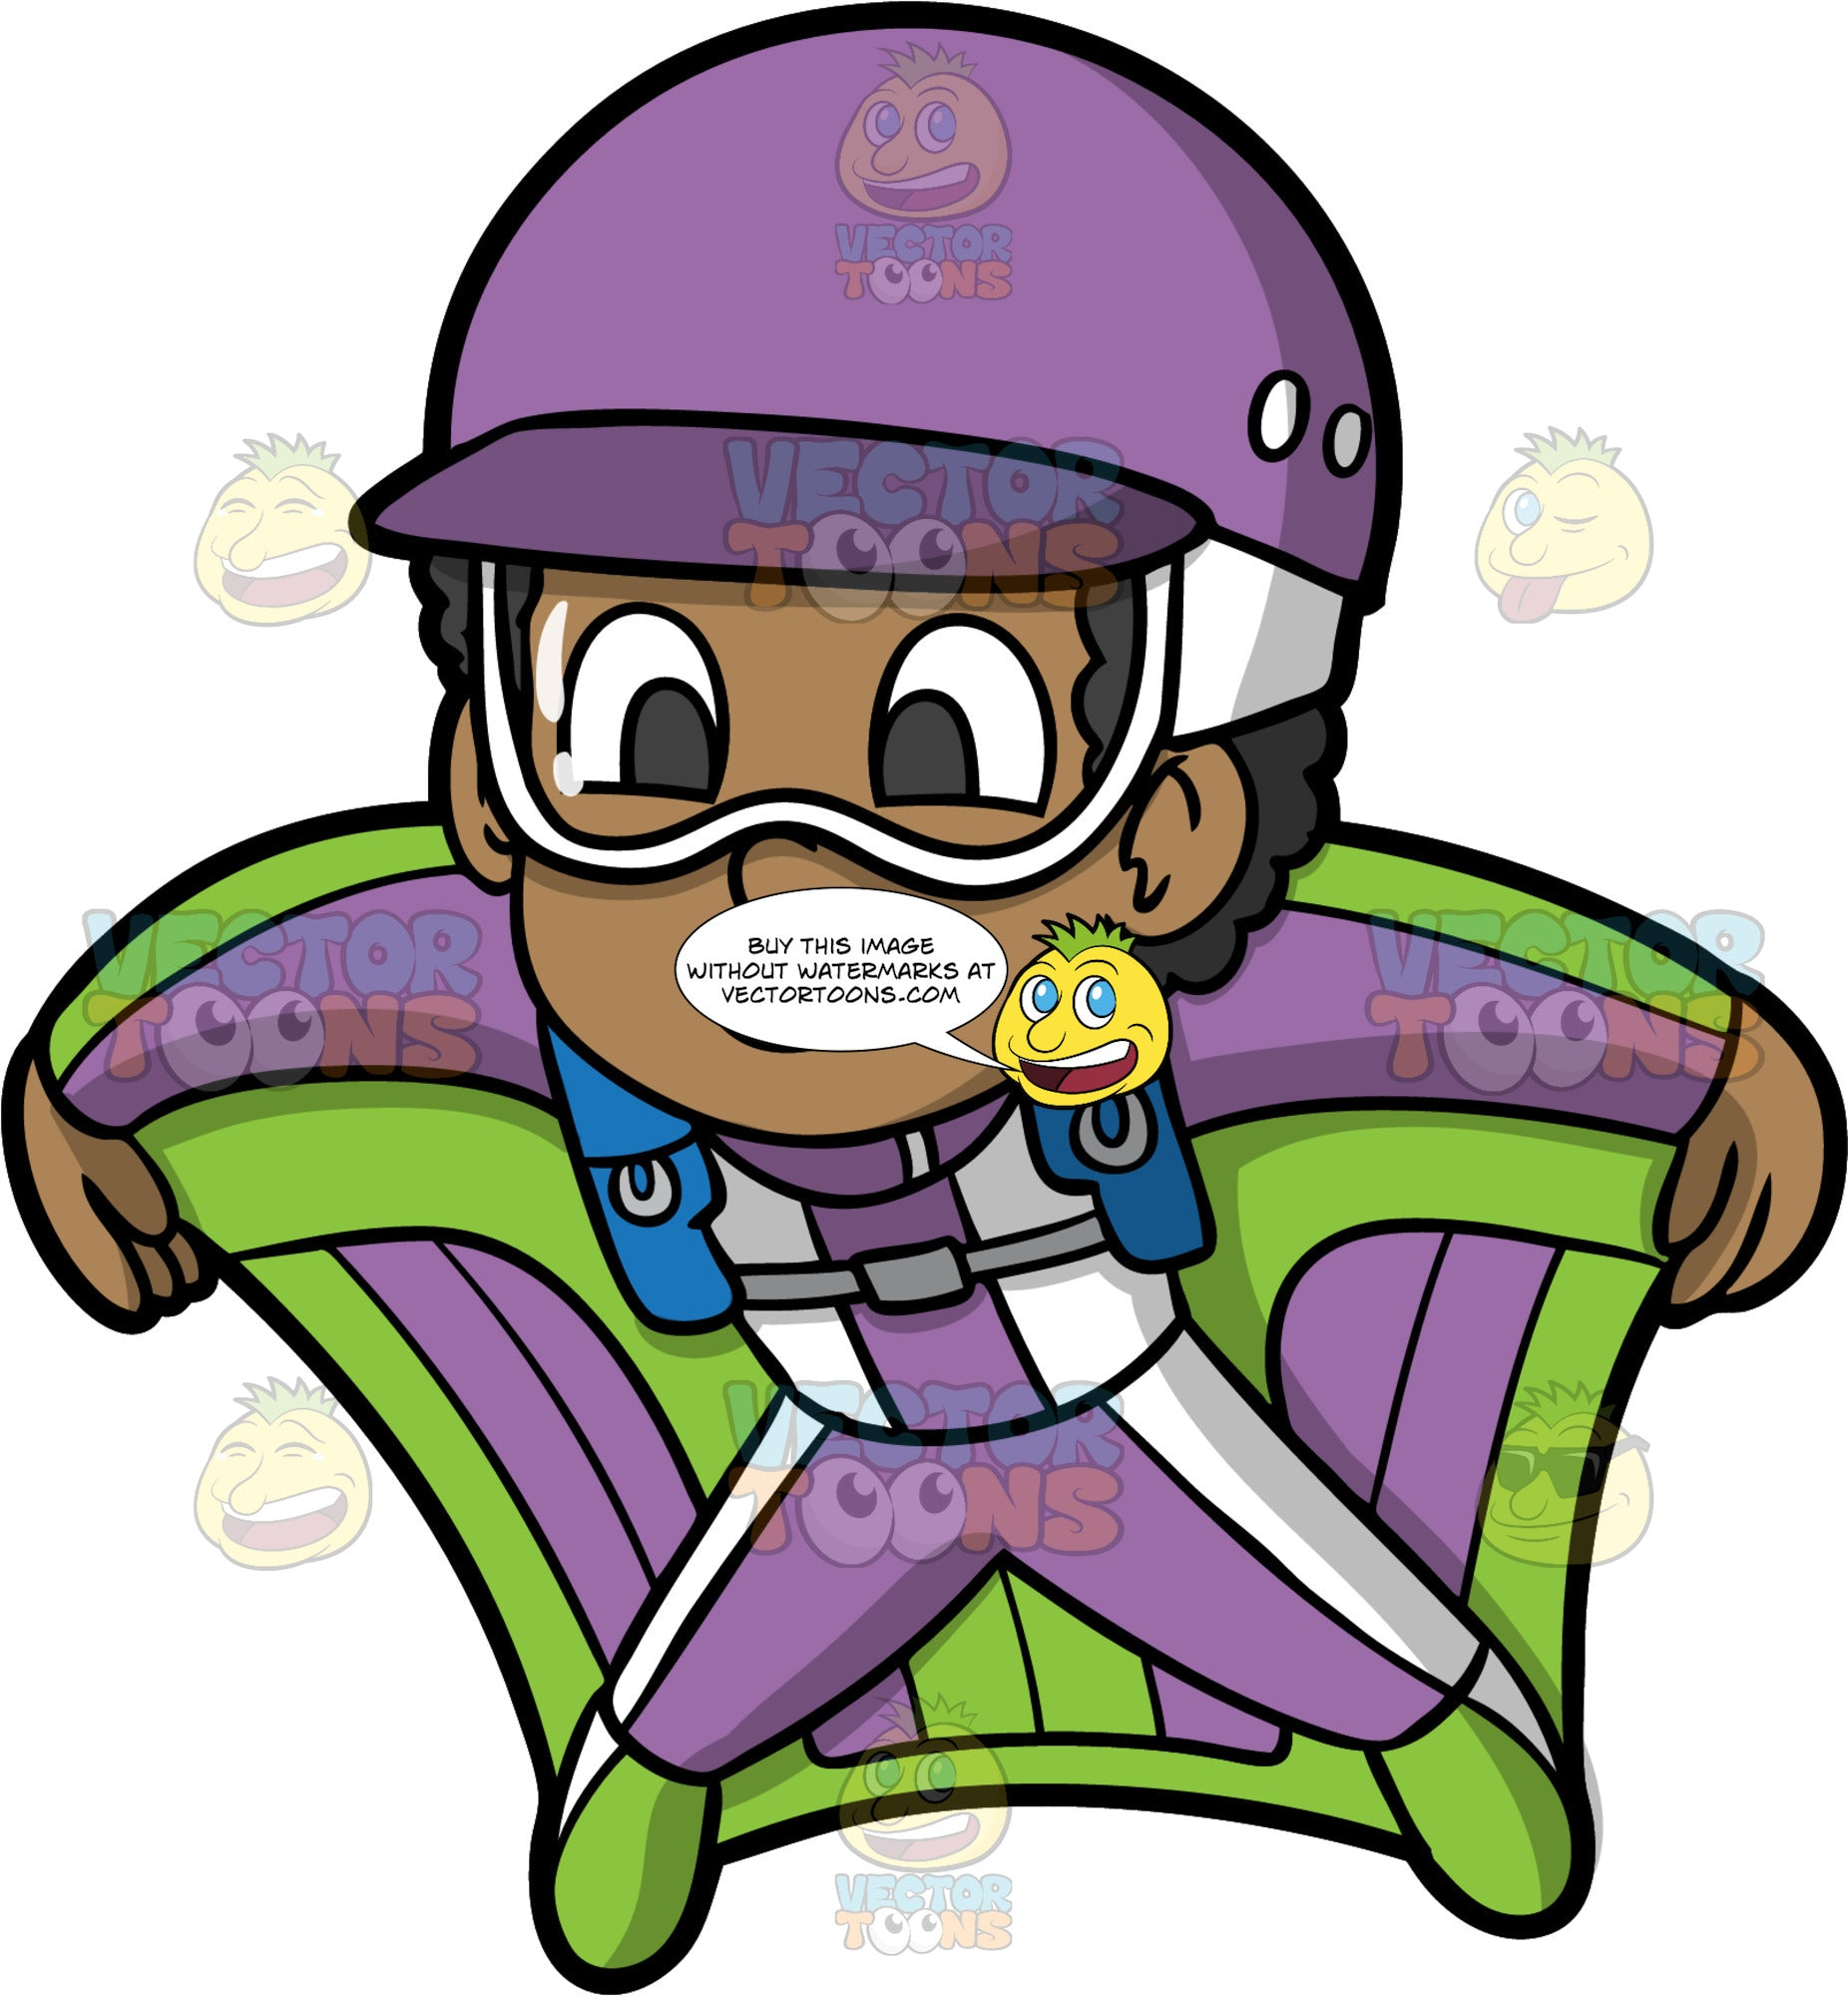 Young Jimmy Flying In A Wingsuit. A young black boy wearing a purple helmet, goggles, and a purple and green wingsuit, flying like a bird through the sky